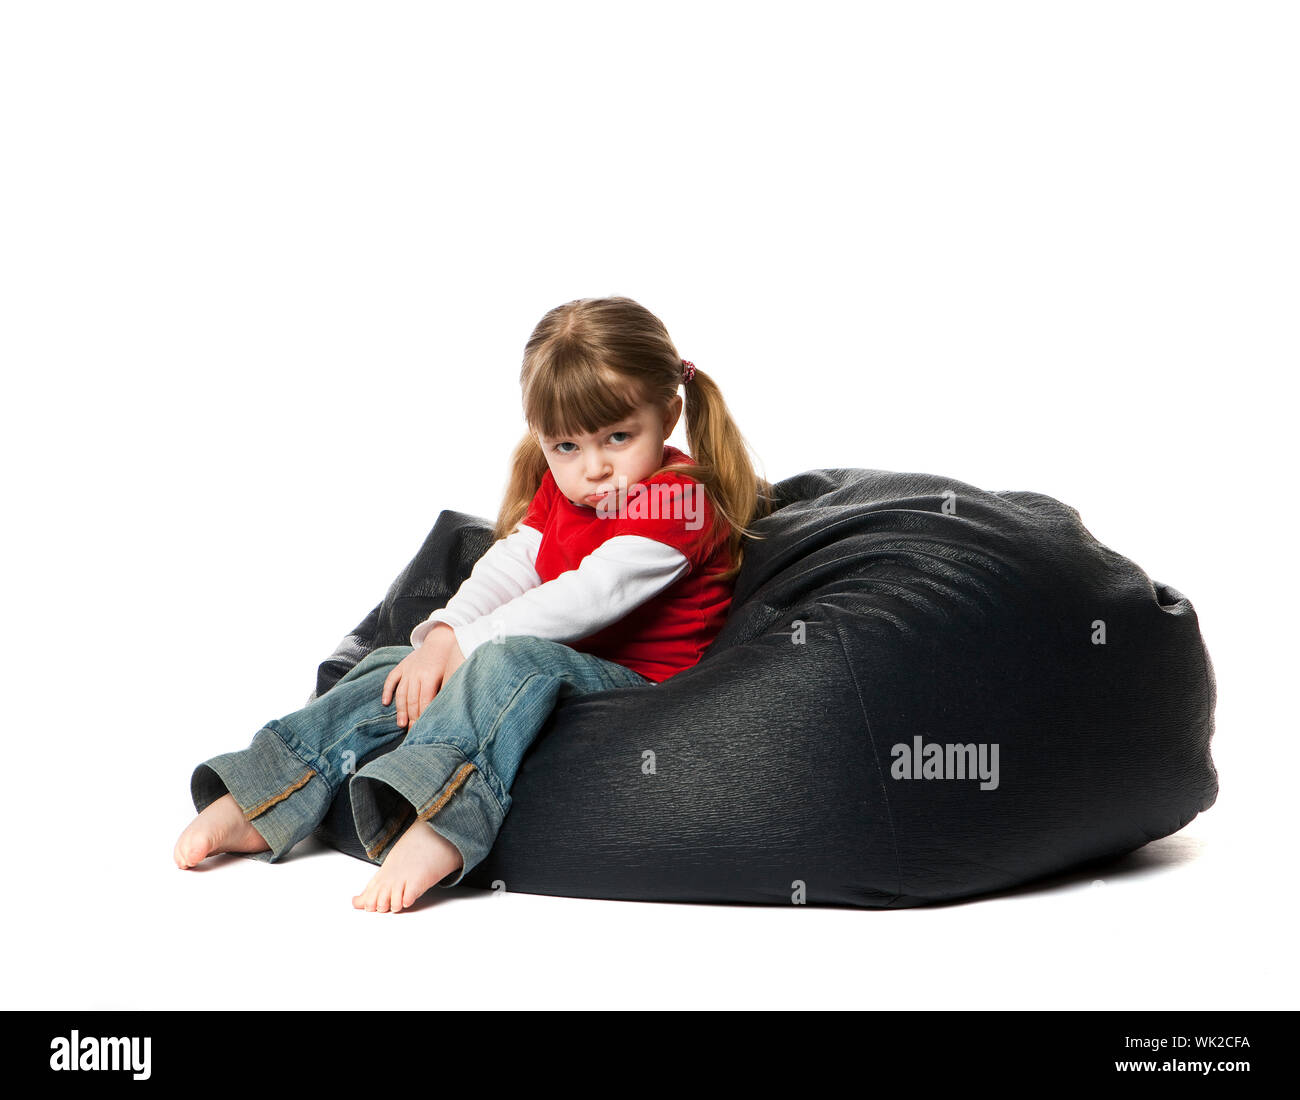 Awe Inspiring Bean Bag Cut Out Stock Images Pictures Alamy Andrewgaddart Wooden Chair Designs For Living Room Andrewgaddartcom